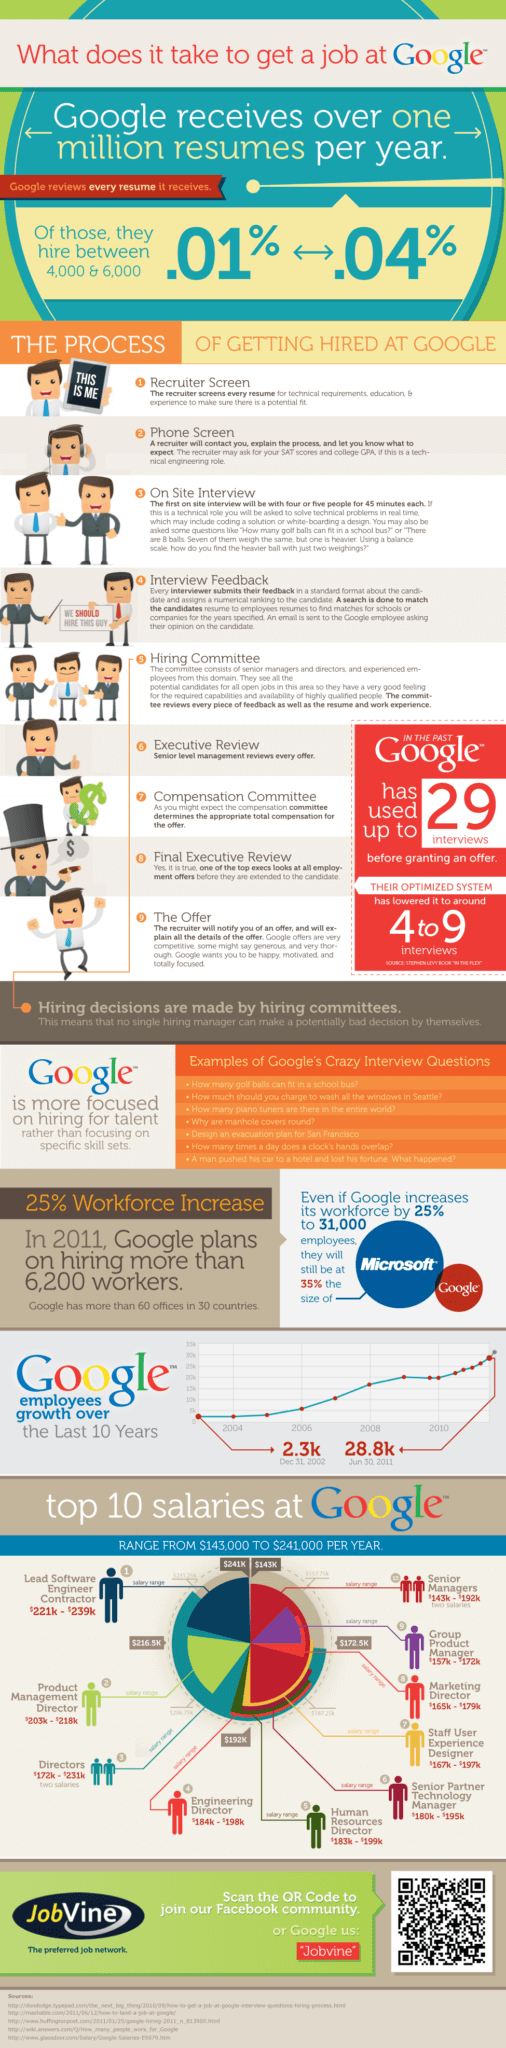 Who wouldn't want to work at Google? 3